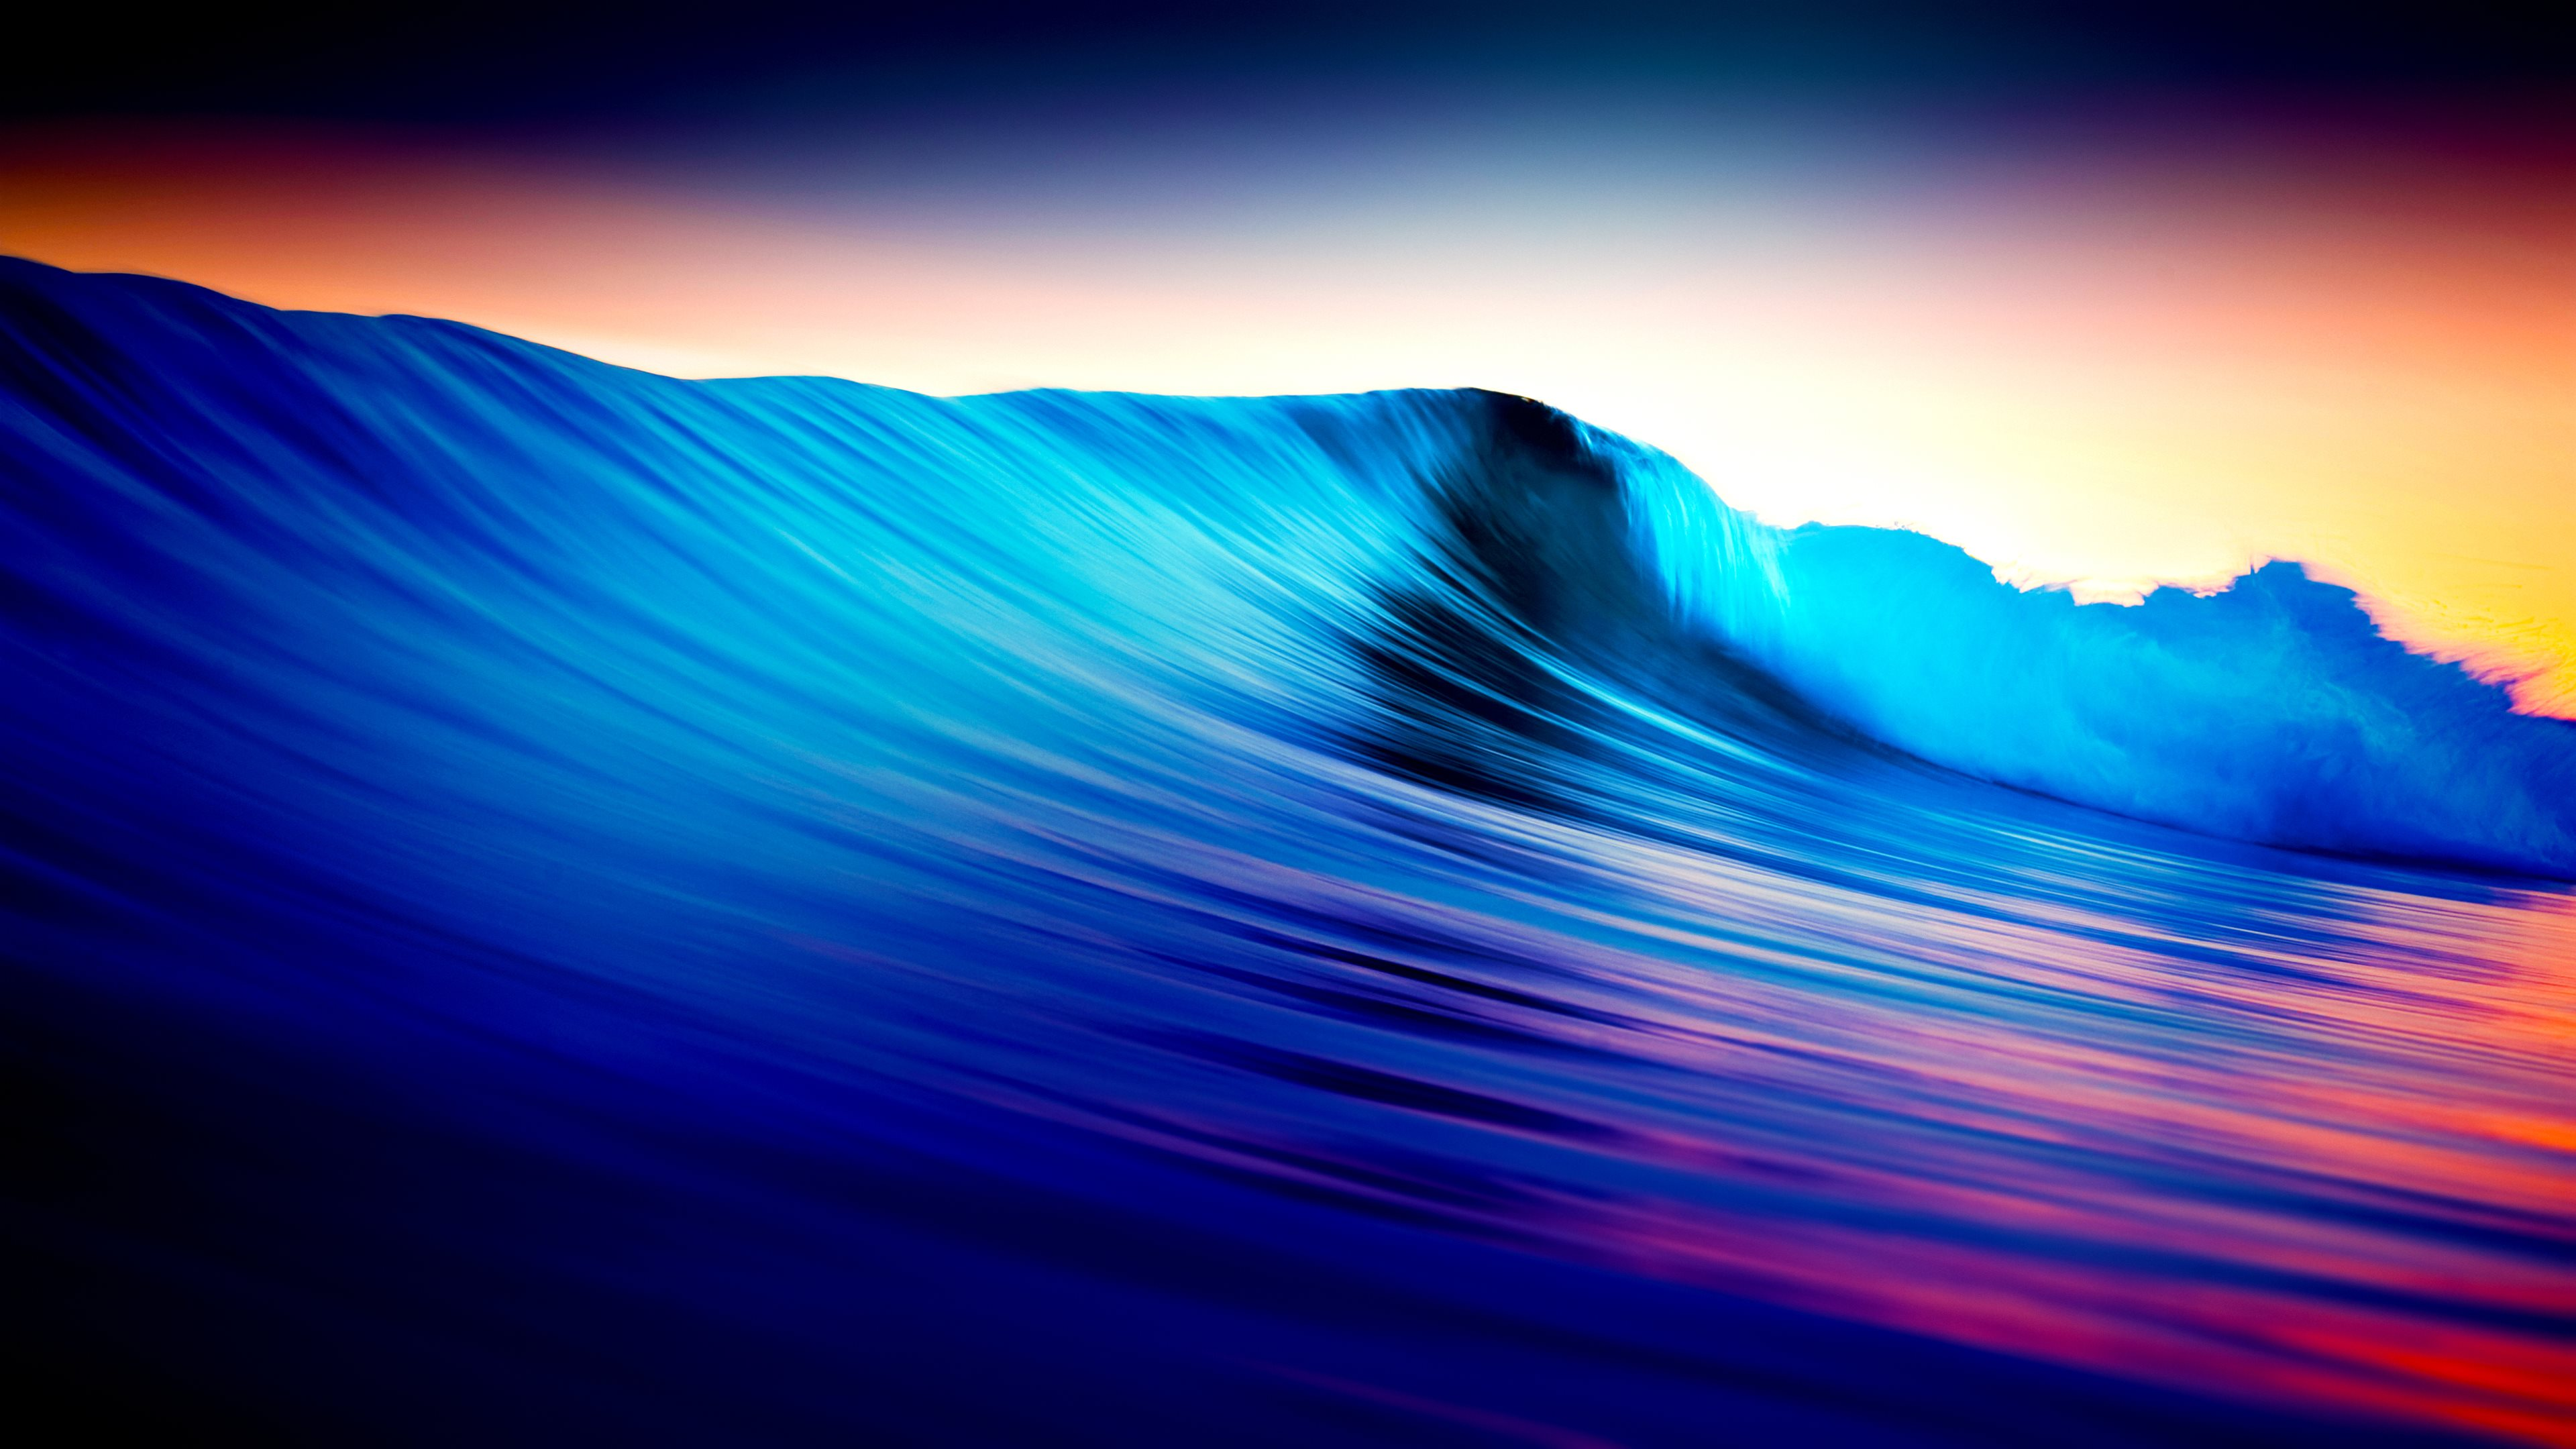 Rolling Waves Mod Wallpapers HD Wallpapers 3840x2160